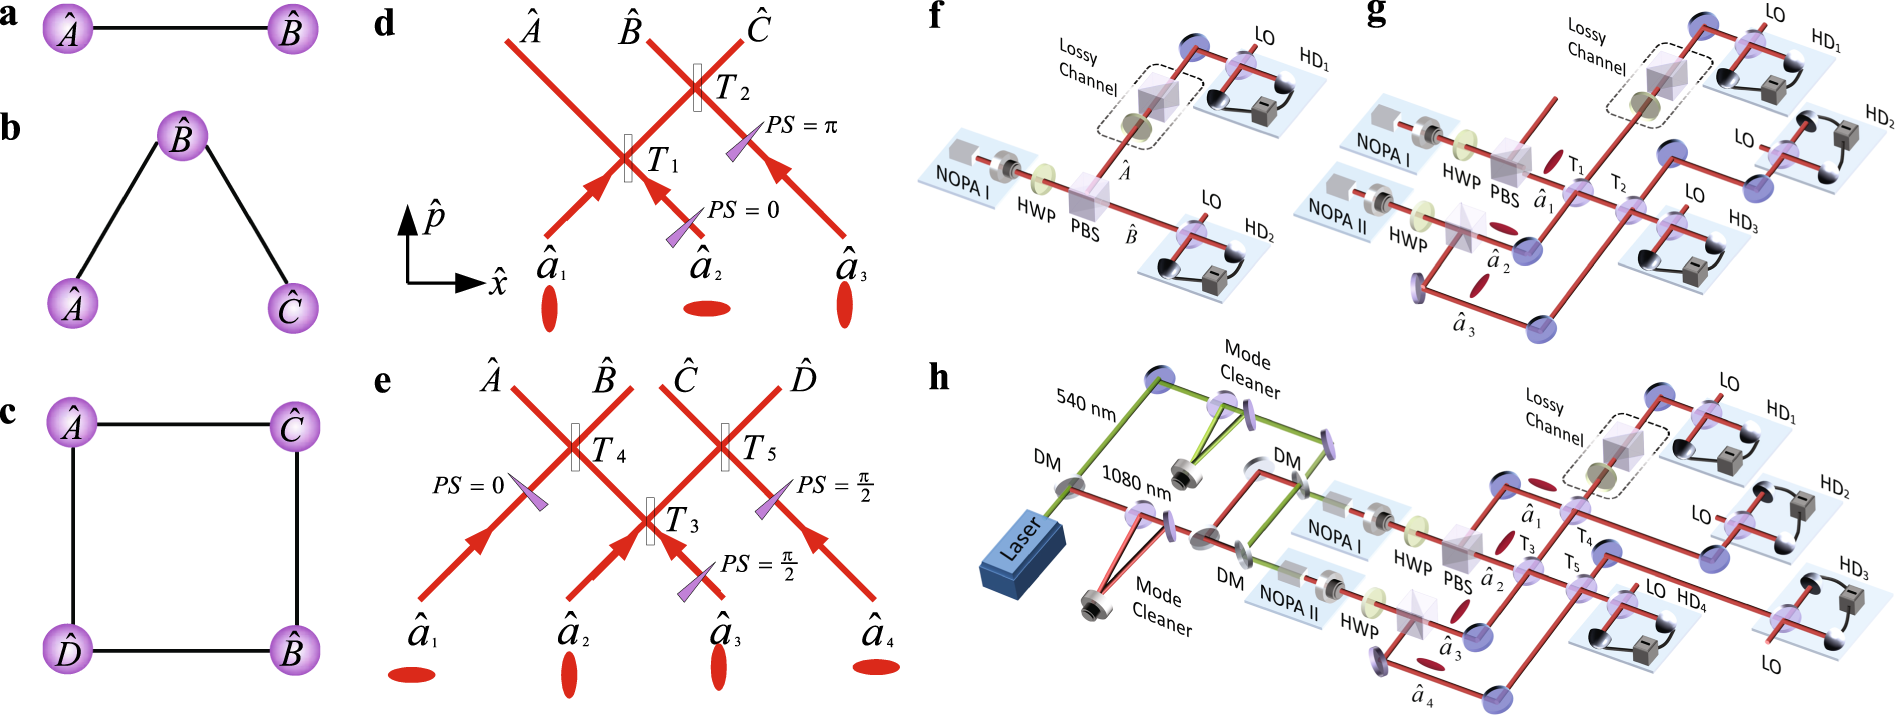 Characterizing the multipartite continuous-variable